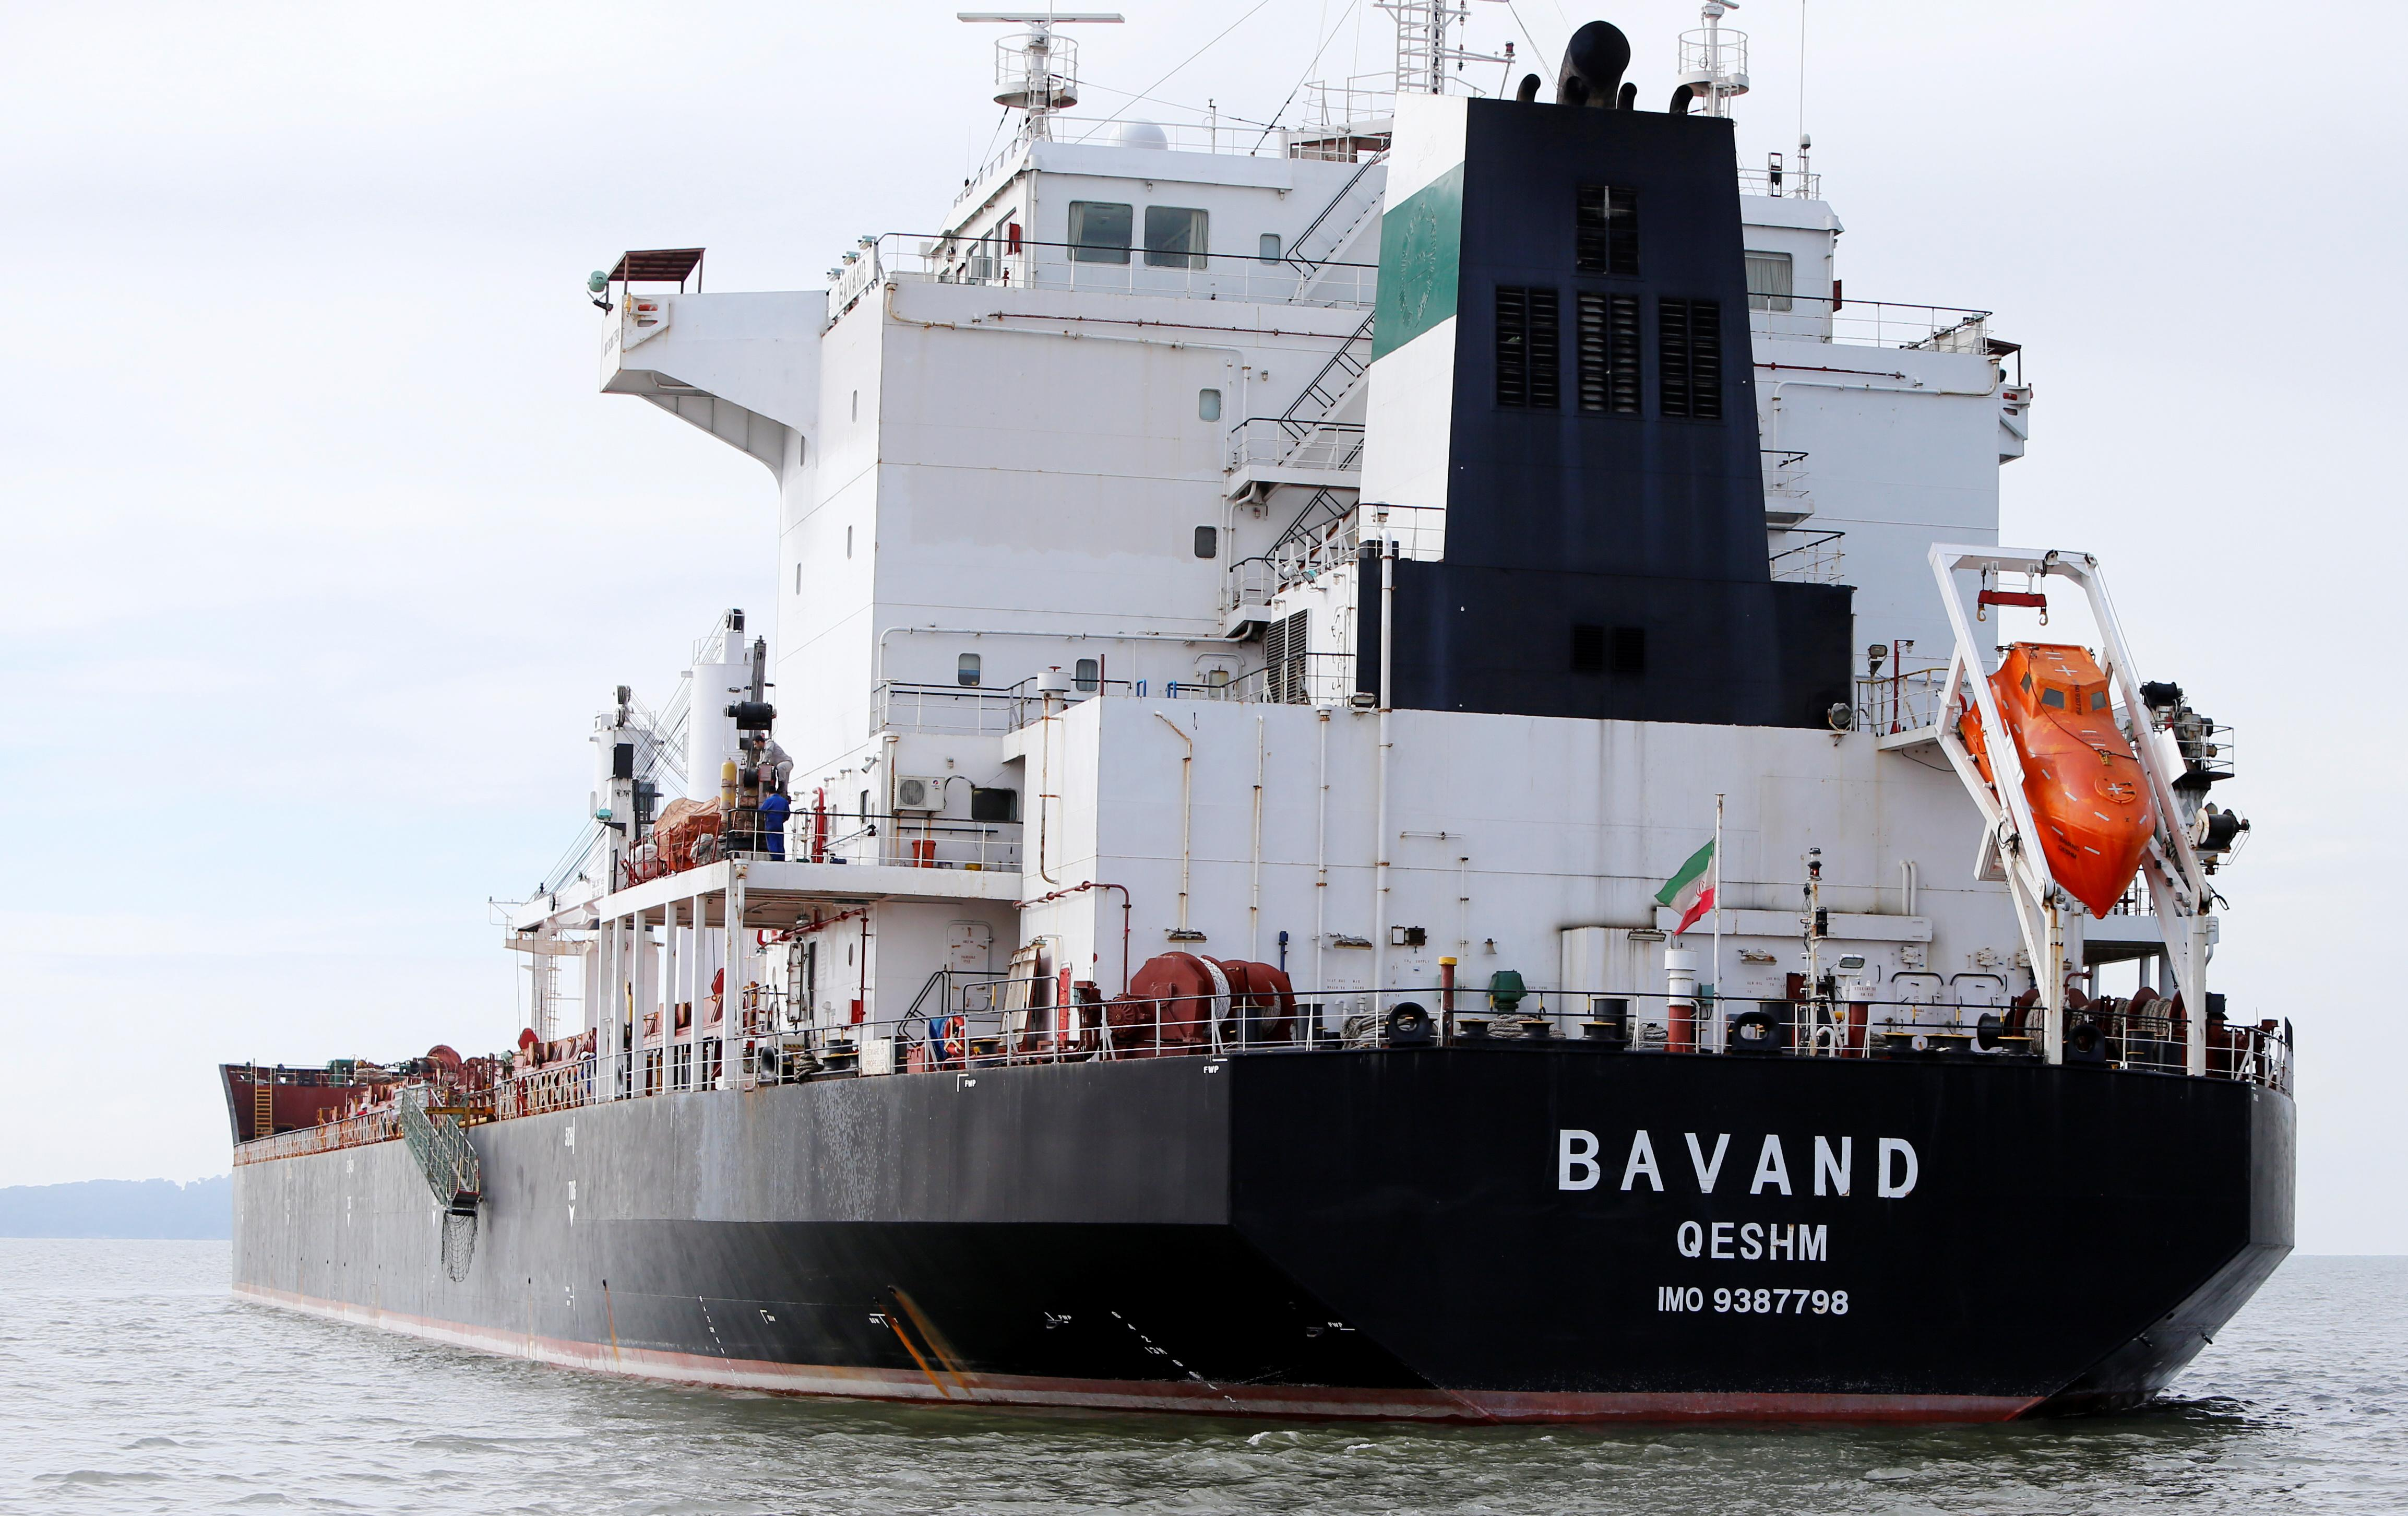 Iran grain ships stuck in Brazil without fuel due to U.S. sanctions